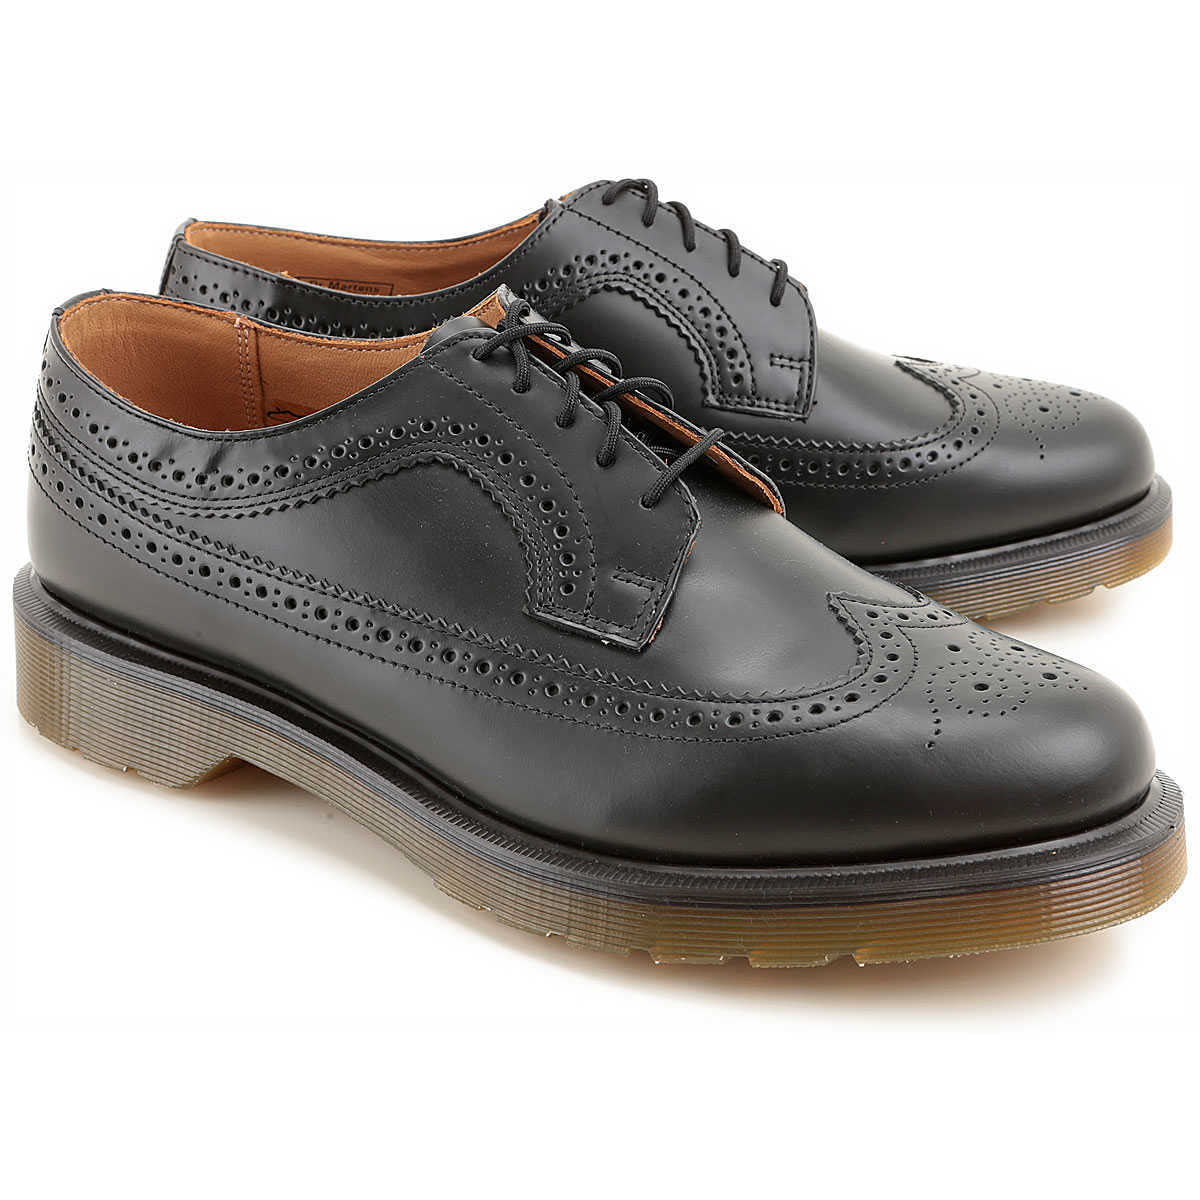 Dr. Martens Lace Up Shoes for Men Oxfords Derbies and Brogues On Sale in Outlet - GOOFASH